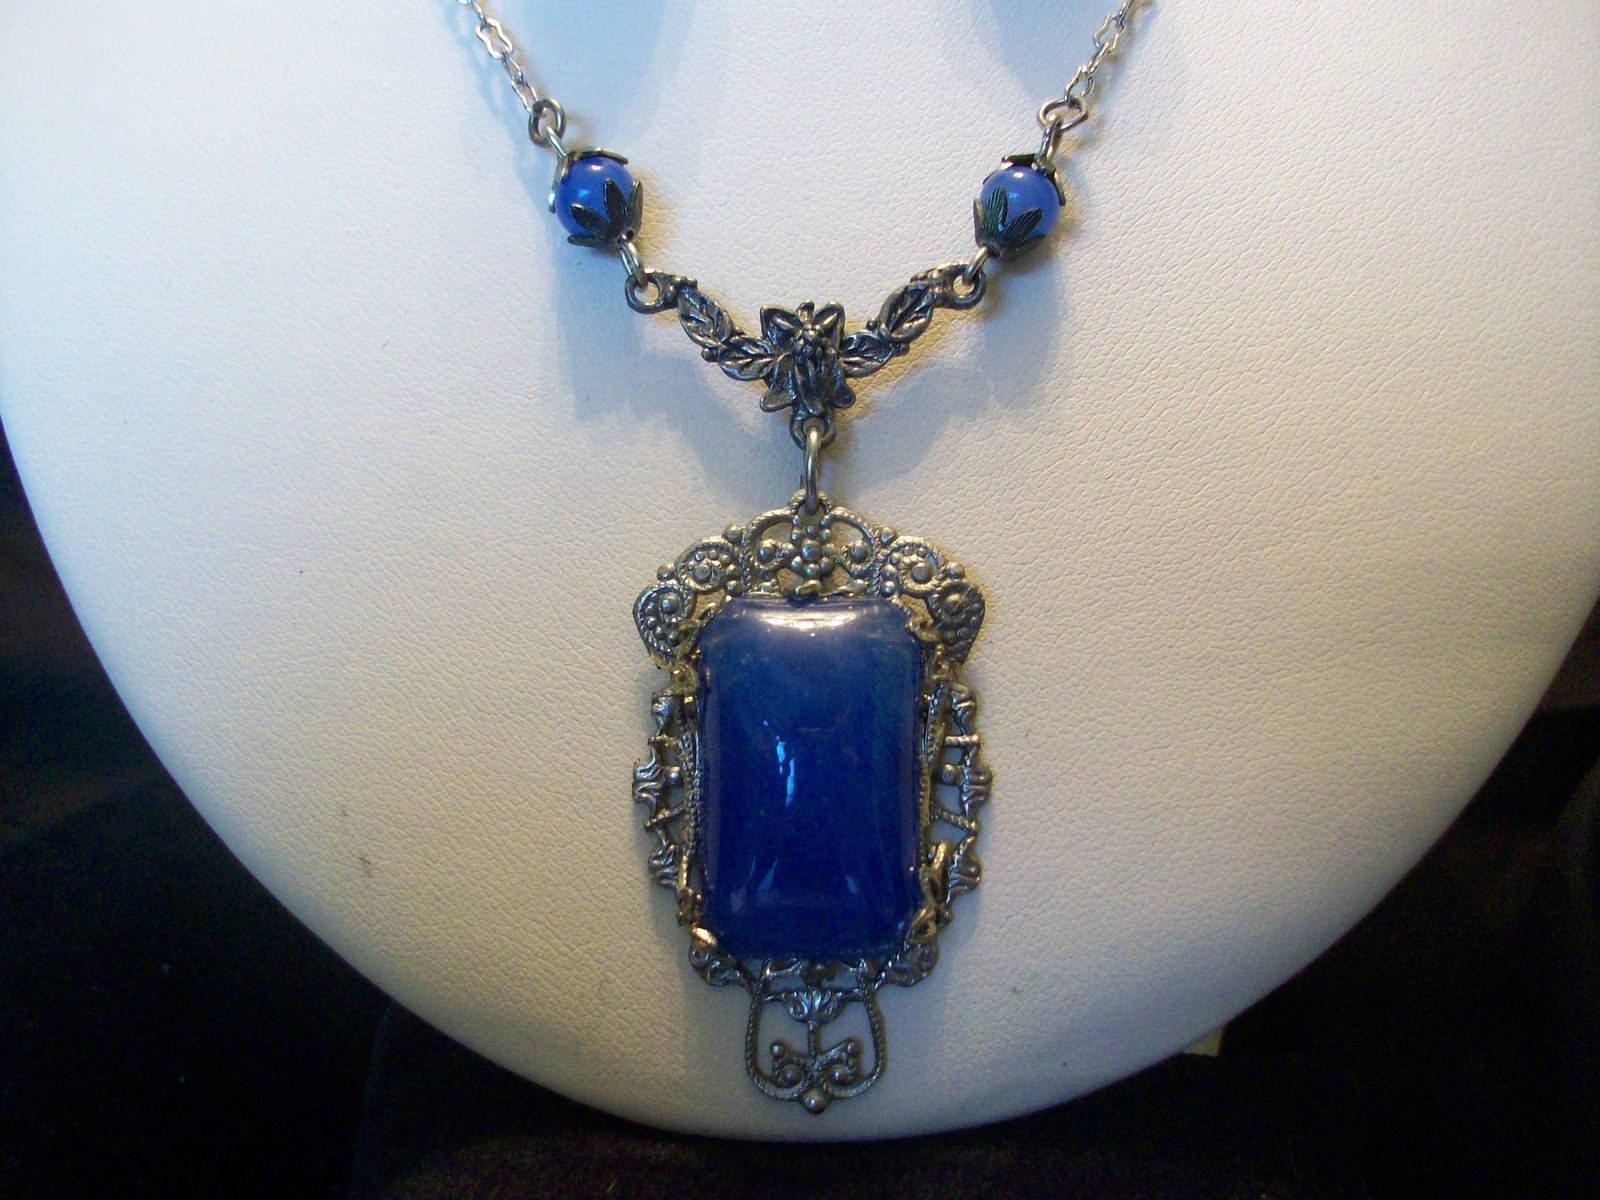 1930s Art Deco Blue Glass and Marcasites Sterling Silver Necklace /& Earrings Set